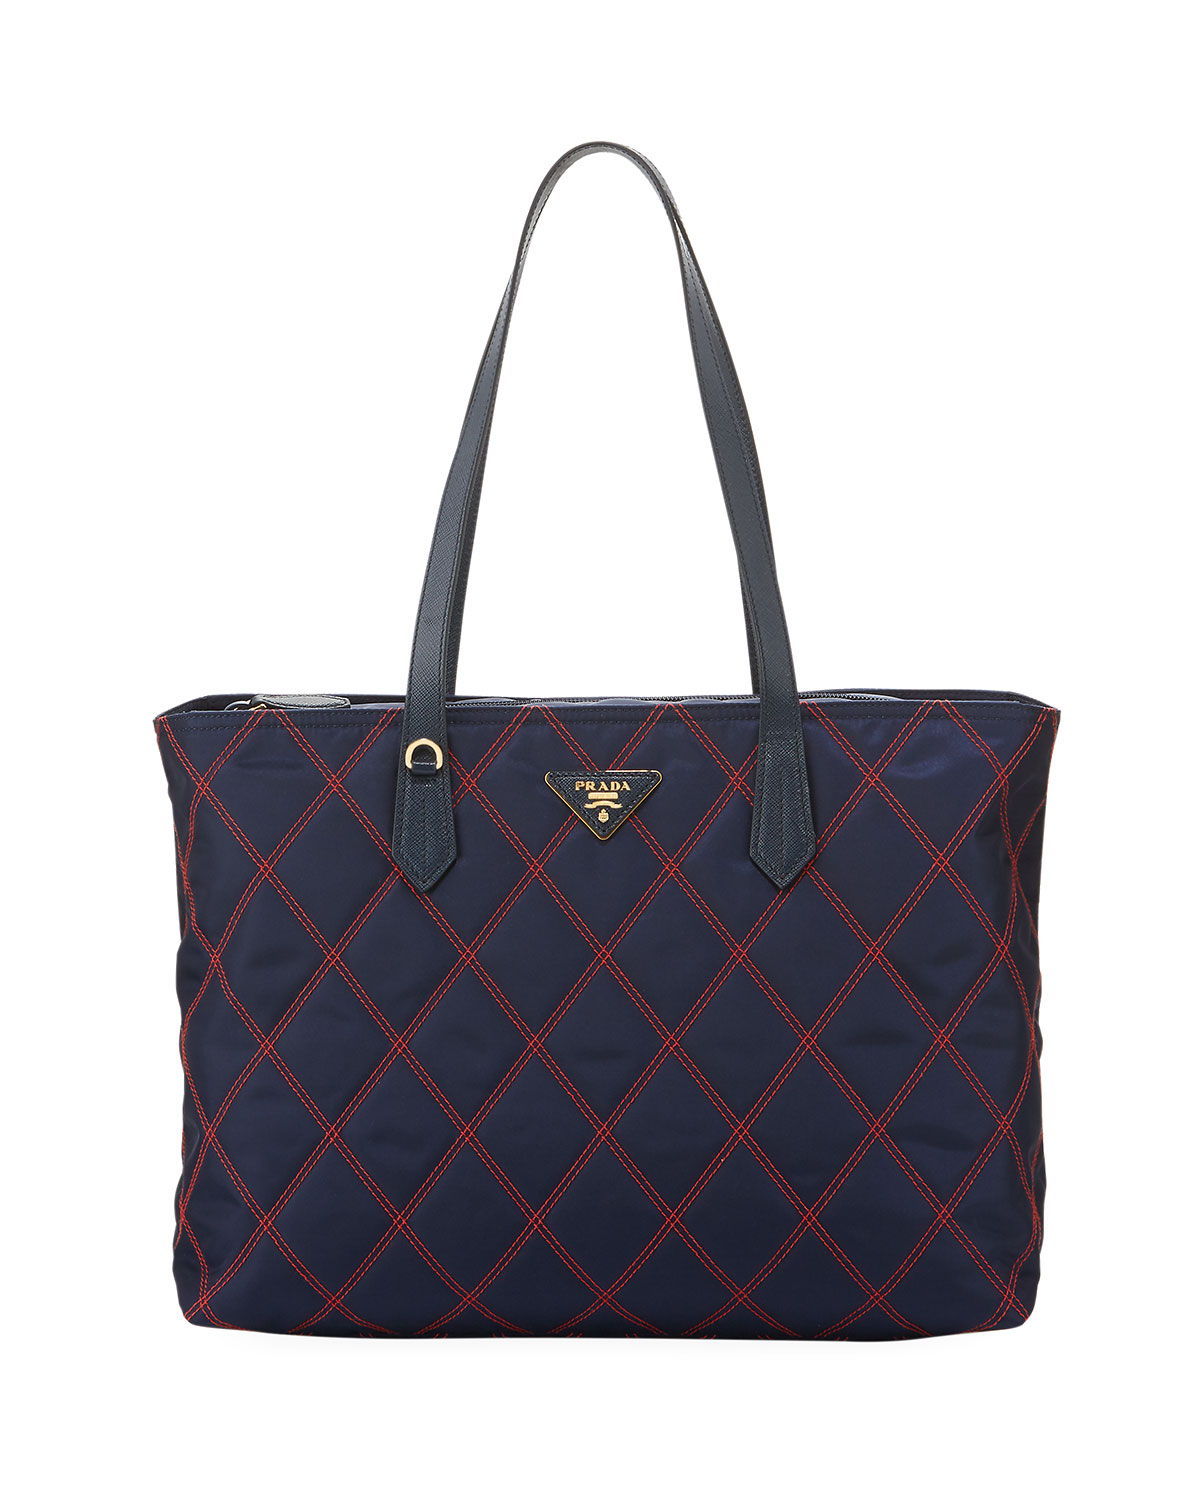 a8b2ca6283 Prada Quilted Nylon Tote Bag